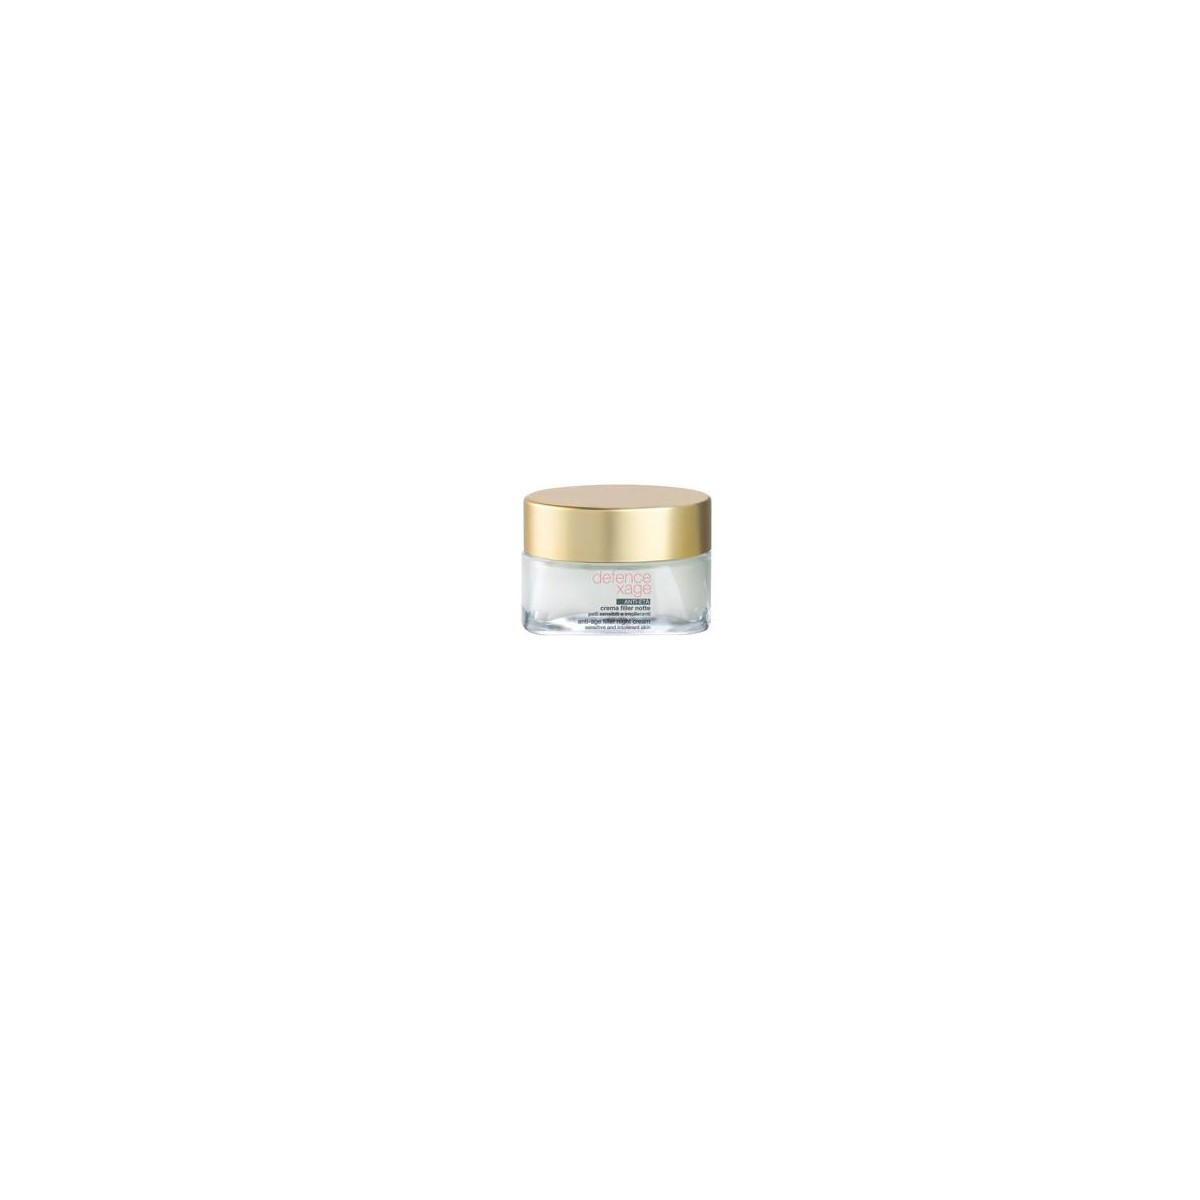 DEFENCE XAGE ULTIMATE CREMA FILLER NOTTE 50 ML